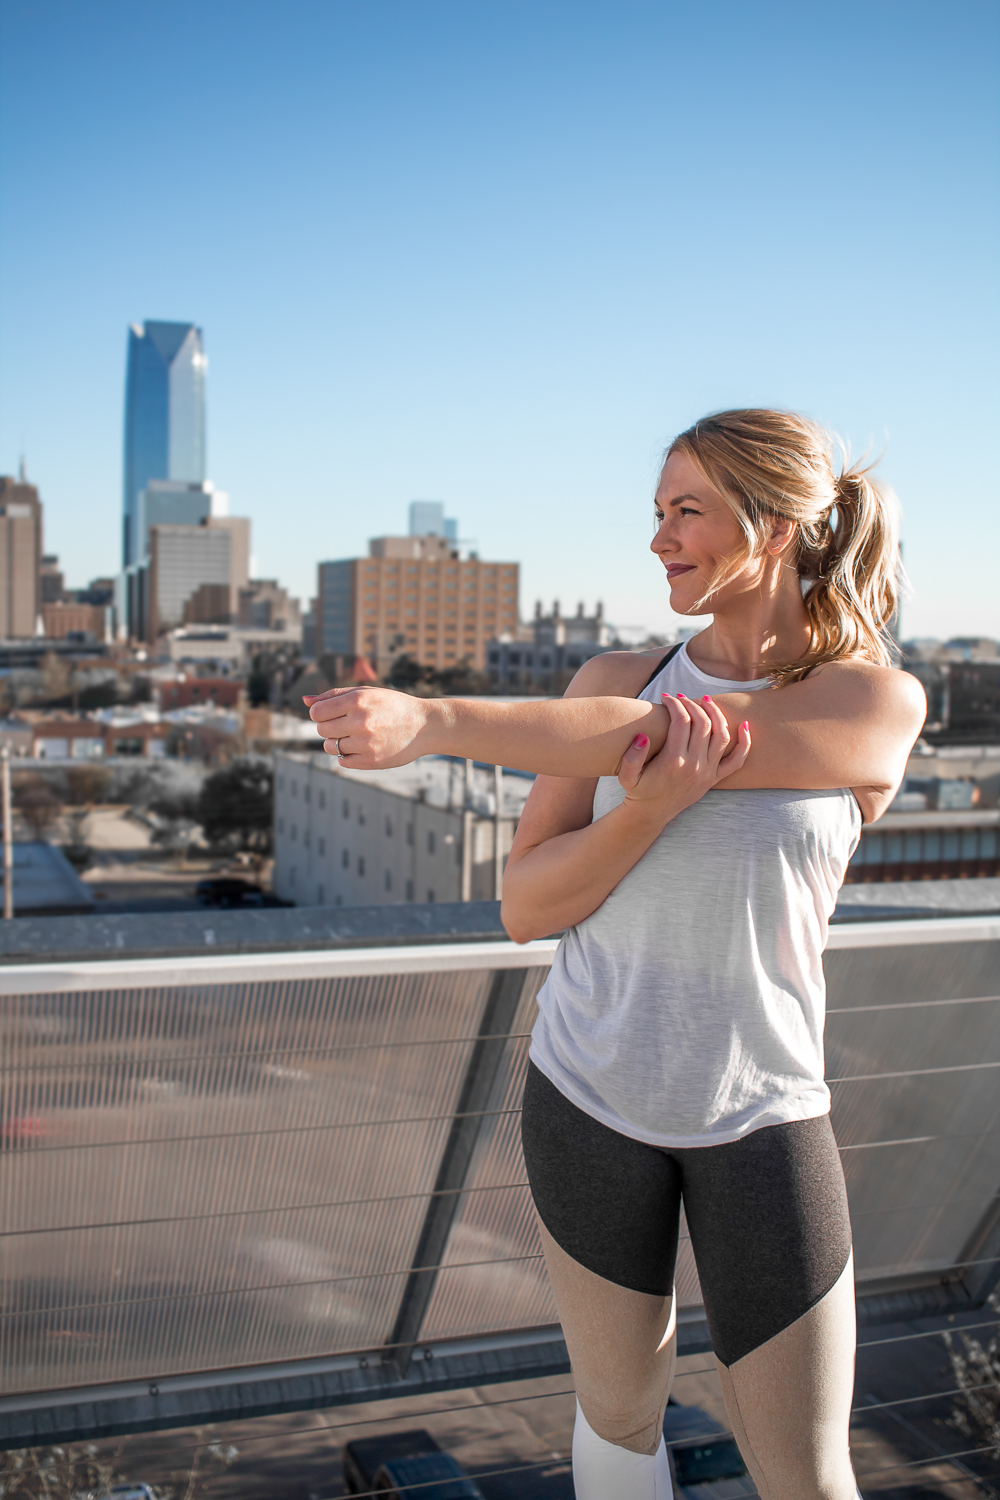 oklahoma city rooftop workout